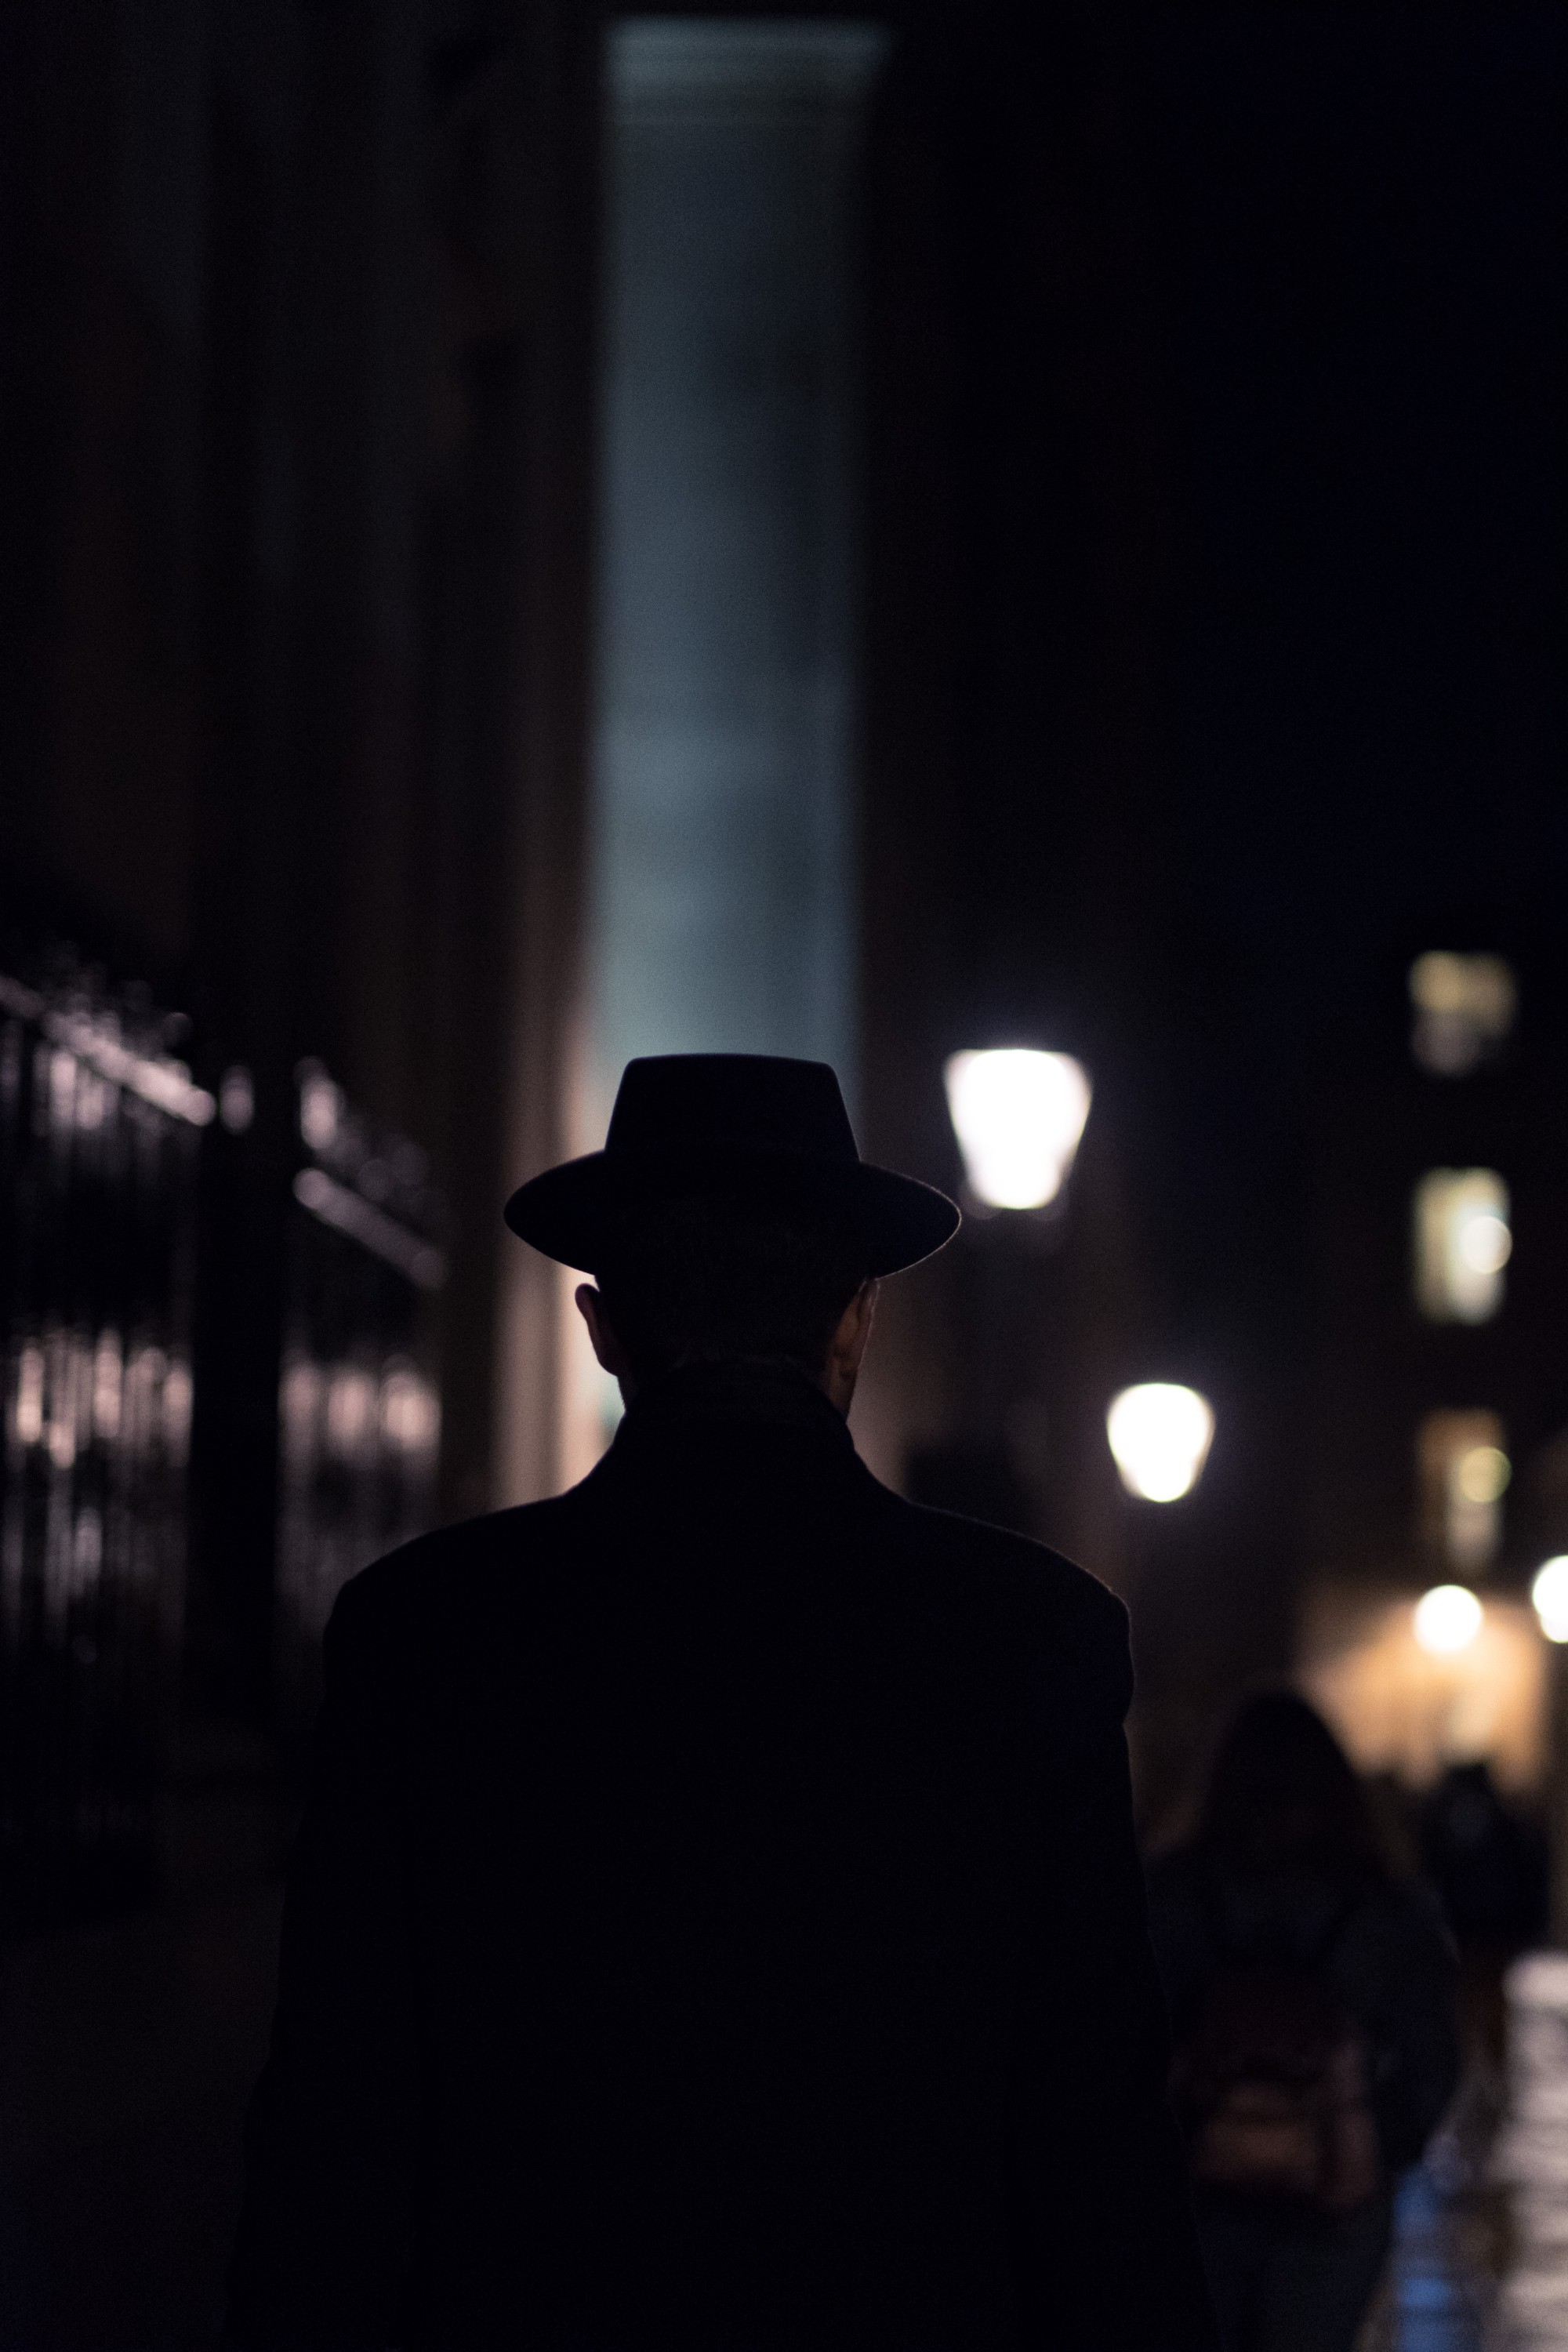 A man wearing a fedora walking at night light slightly by street lamps